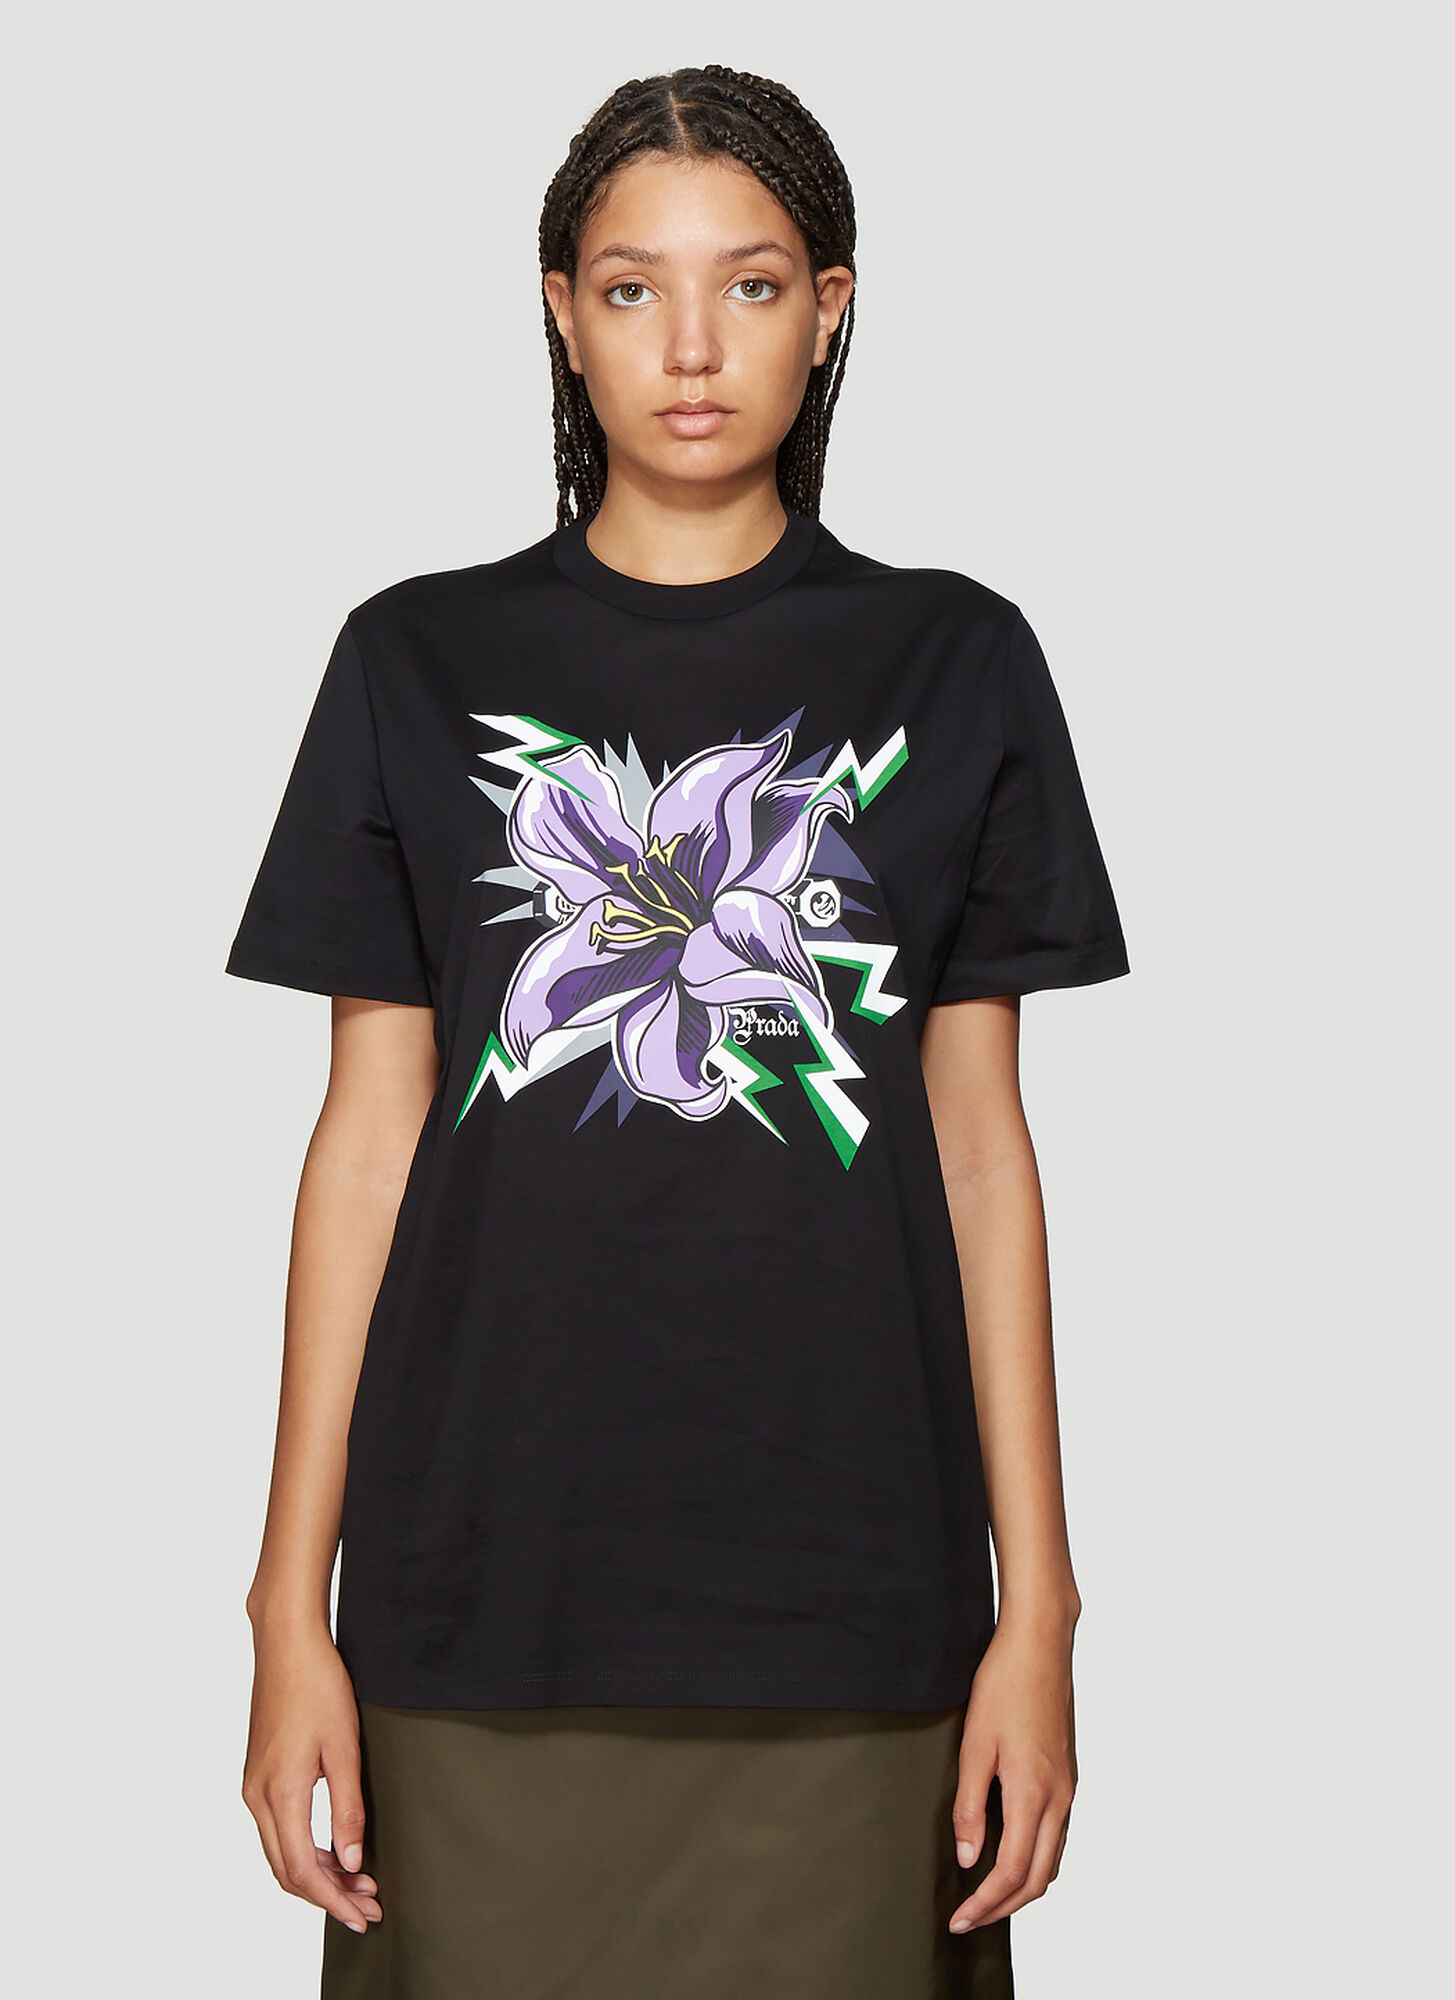 Prada Flower Print T-Shirt in Black